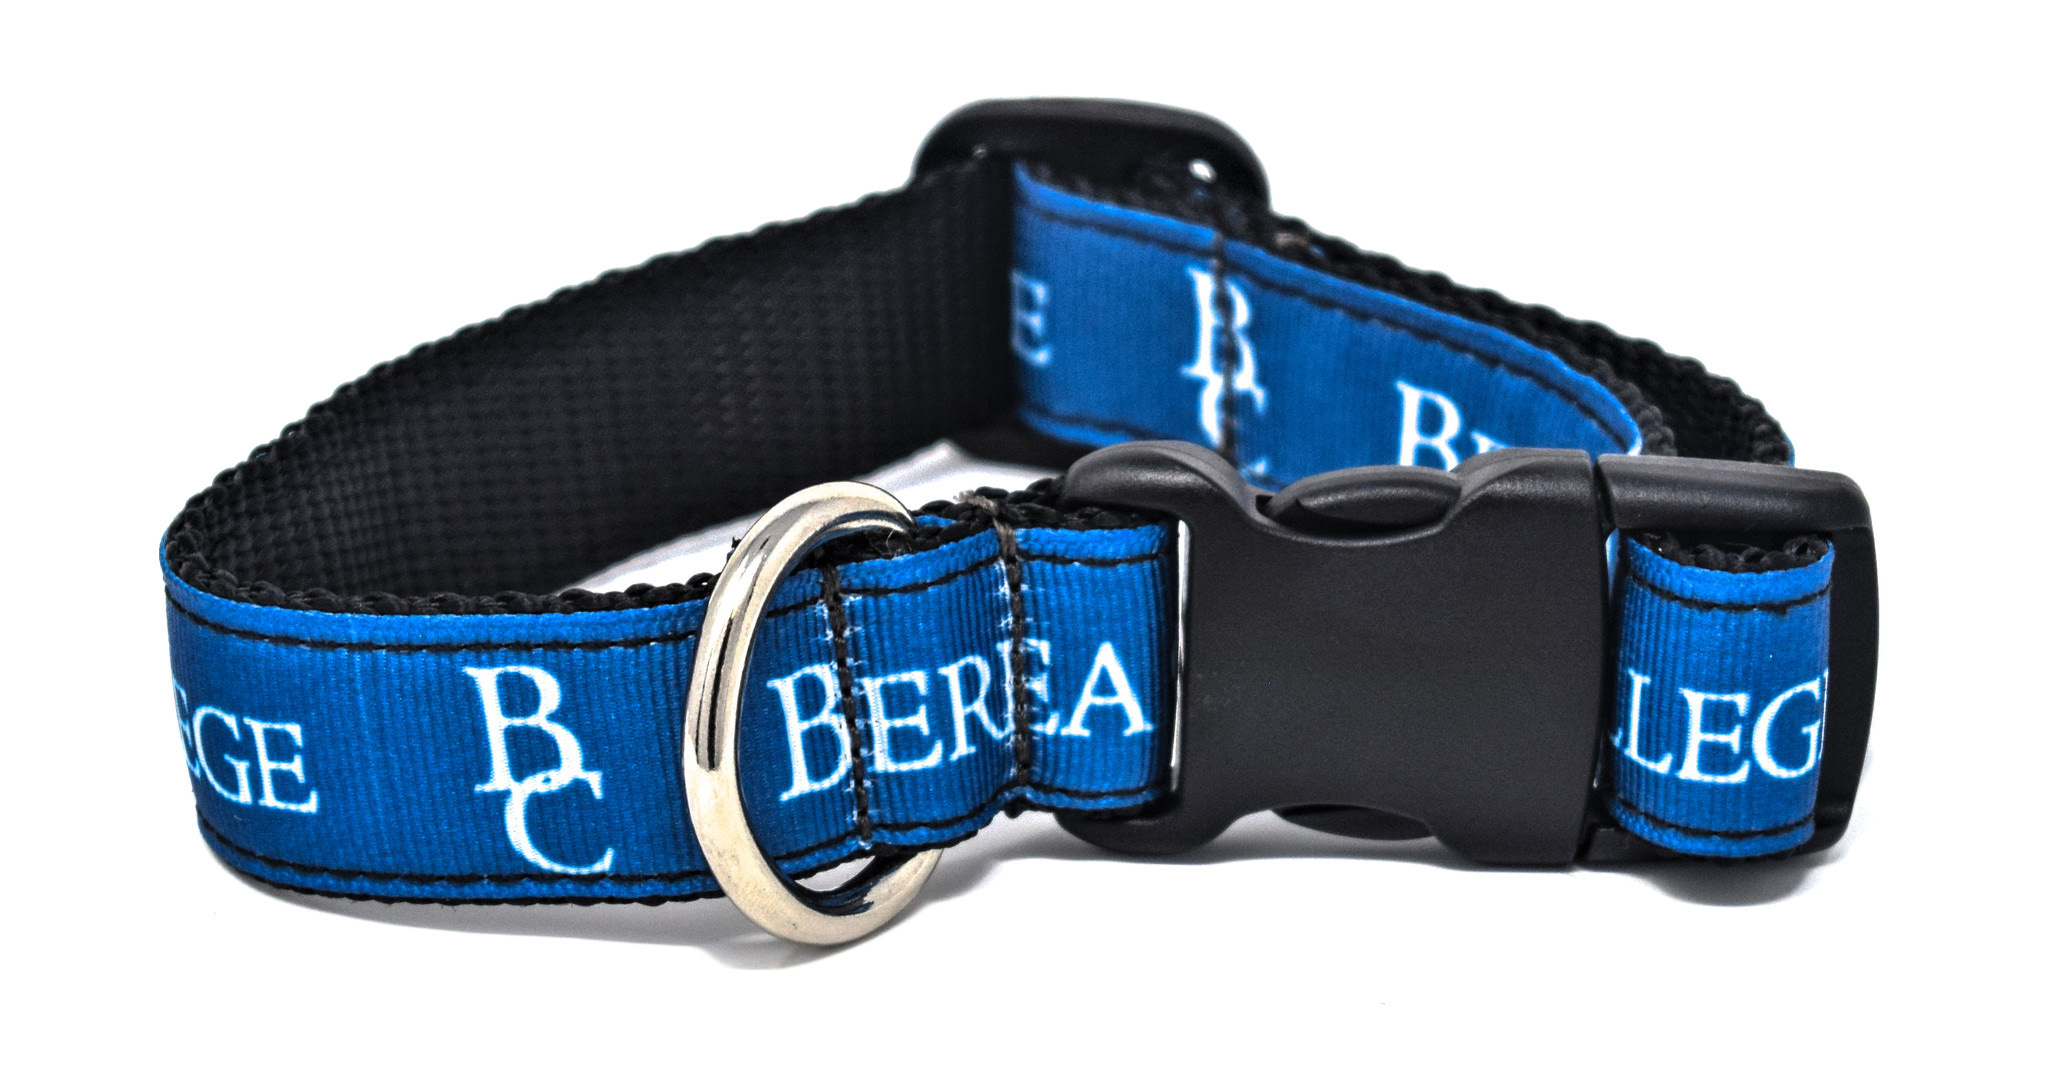 Berea Dog Collar-1